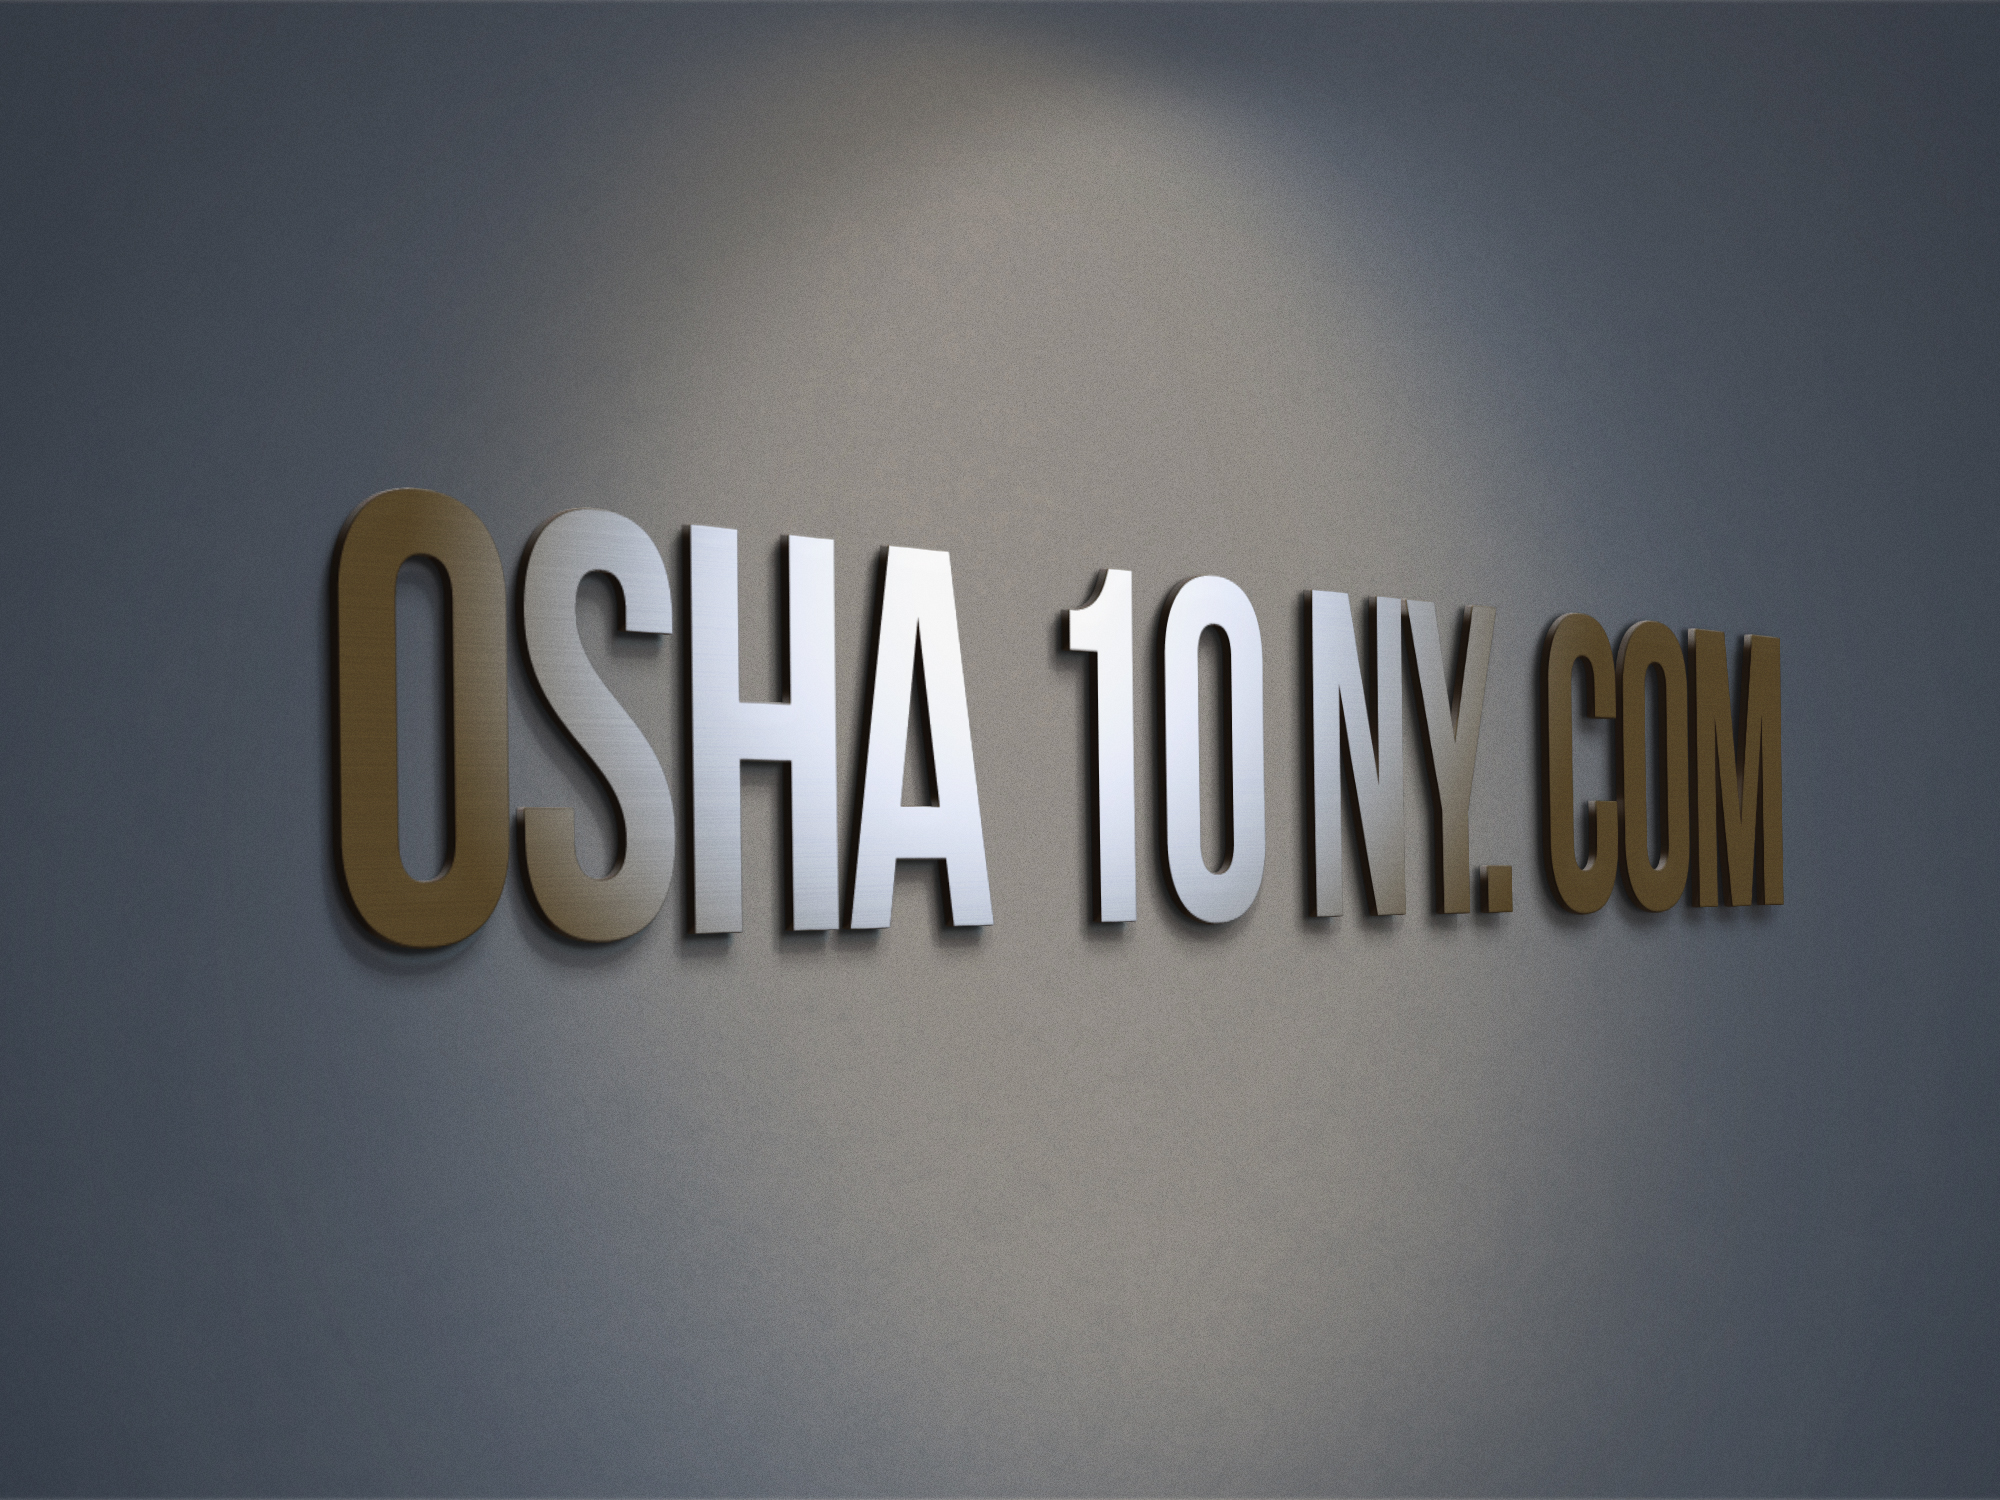 Osha 10 ny training in 5 boroughs call 516 570 0754 xflitez Choice Image